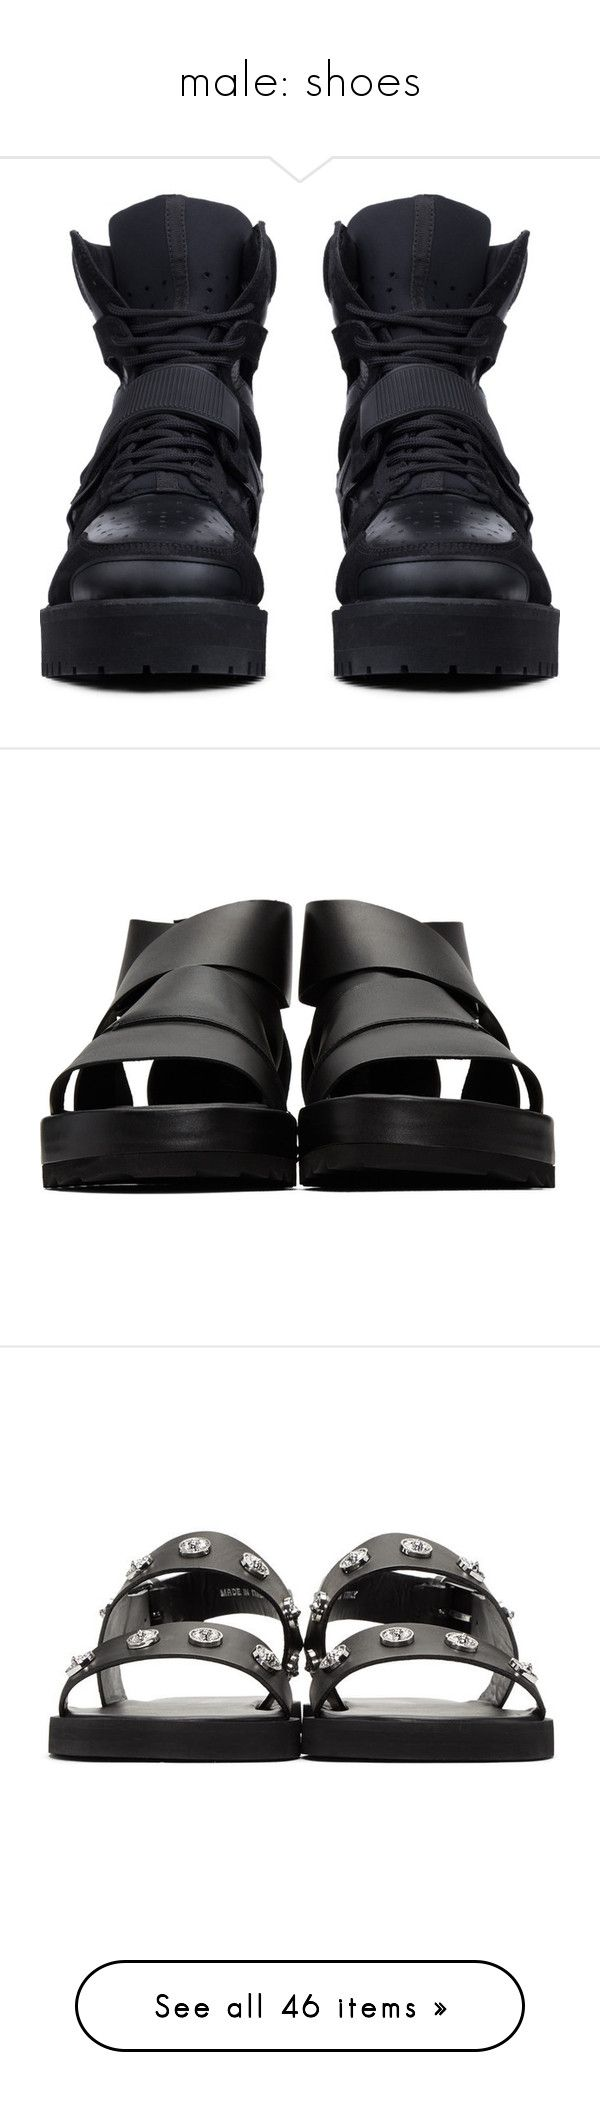 """""""male: shoes"""" by l-x-ily ❤ liked on Polyvore featuring shoes, men's fashion, men's shoes, men's sneakers, mens black slip on sneakers, mens high top sneakers, mens slipon shoes, mens mesh sneakers, mens black slip on shoes and men's sandals"""